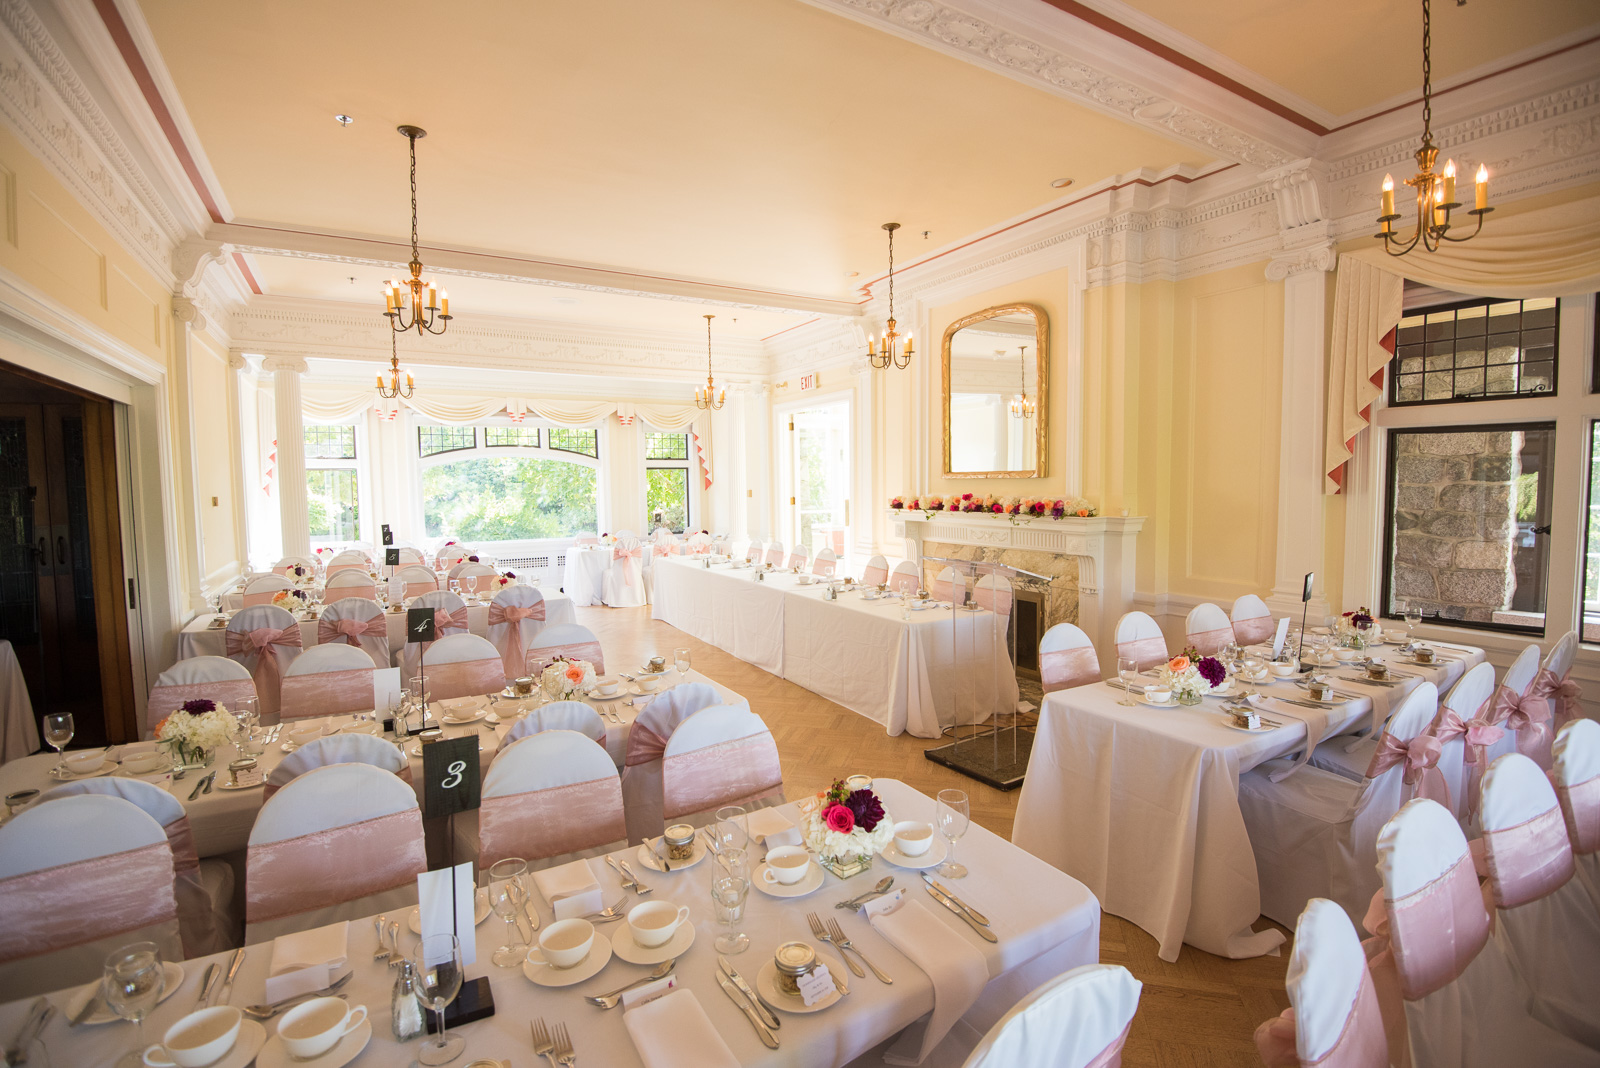 wedding reception hall at cecil green park house on ubc campus in vancouver - victoria wedding photographers